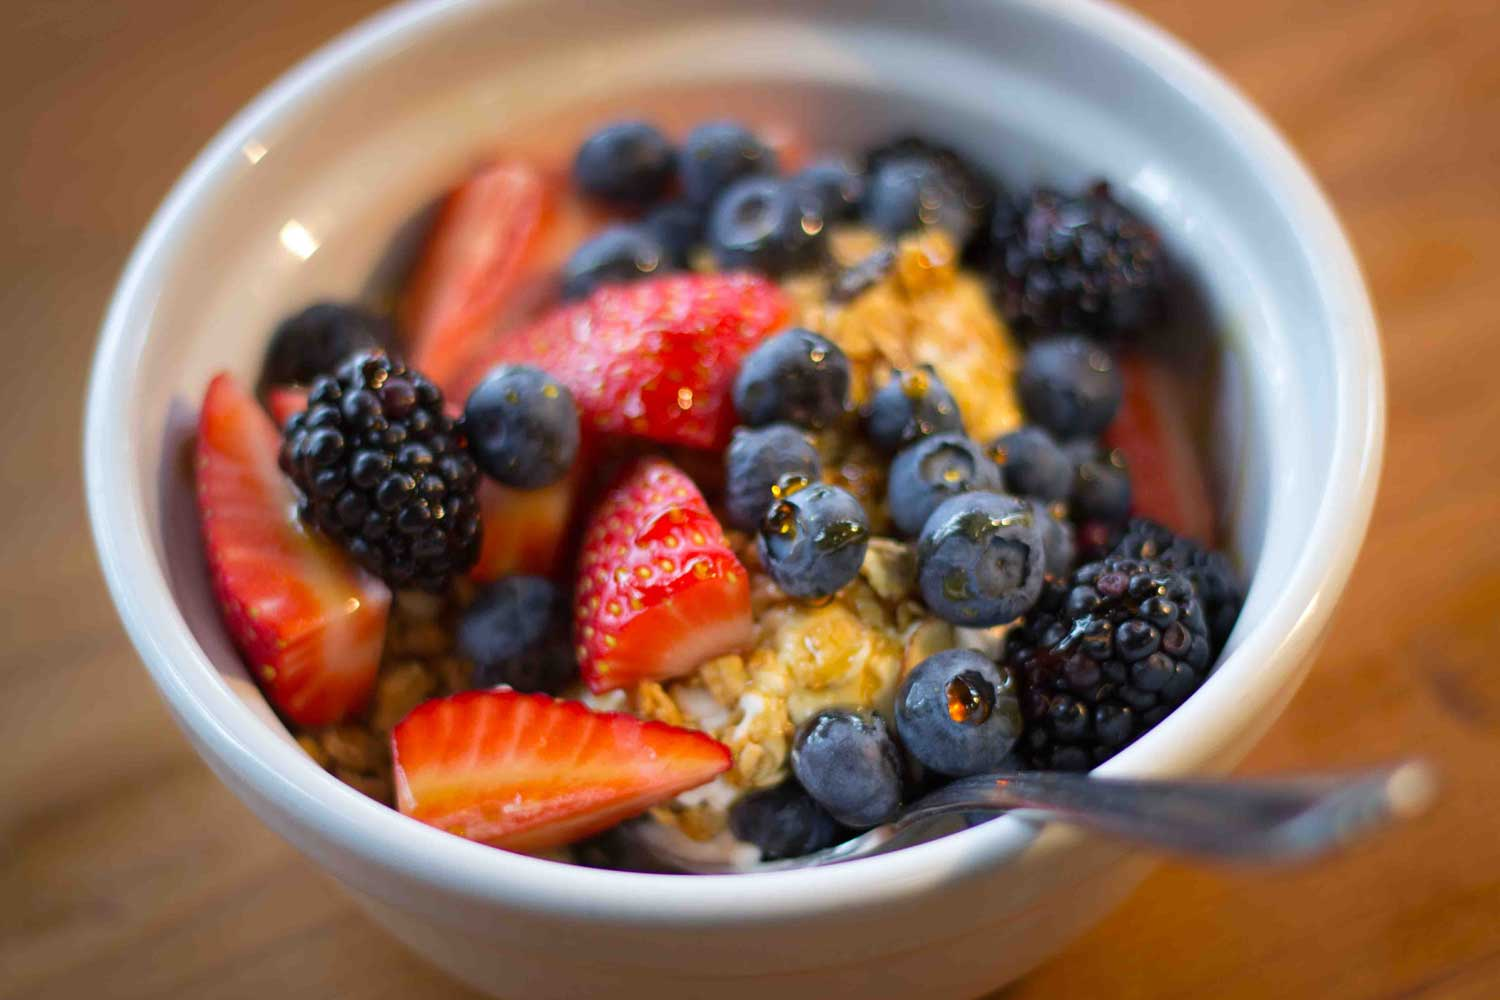 avenue-cafe-fruit-granola-new-orleans-breakfast.jpg